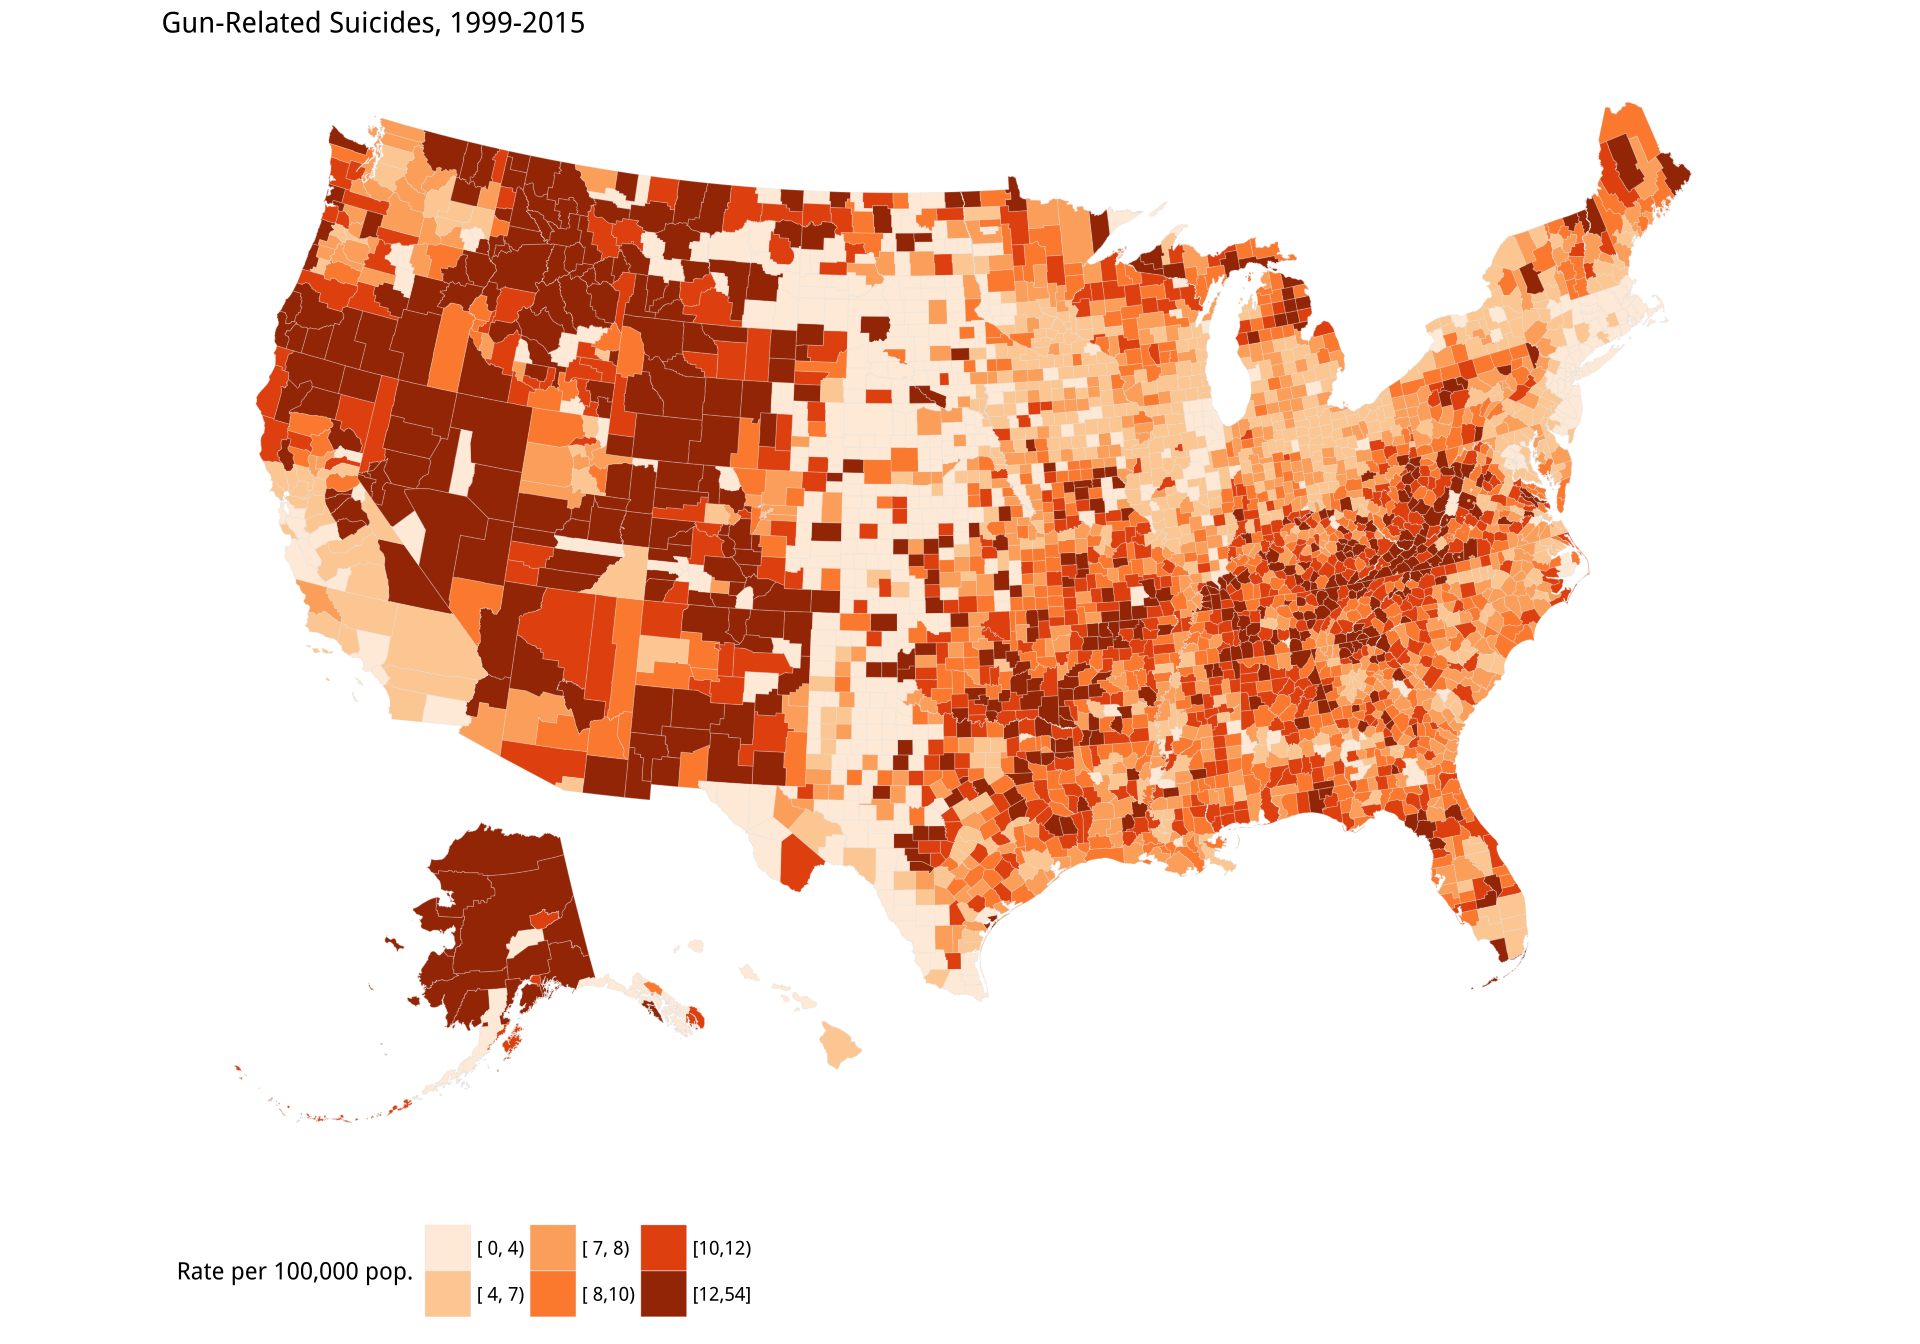 Gun-related suicides by county; Reverse-coded population density by county. Before tweeting this picture, please read the text for discussion of what is wrong with it.